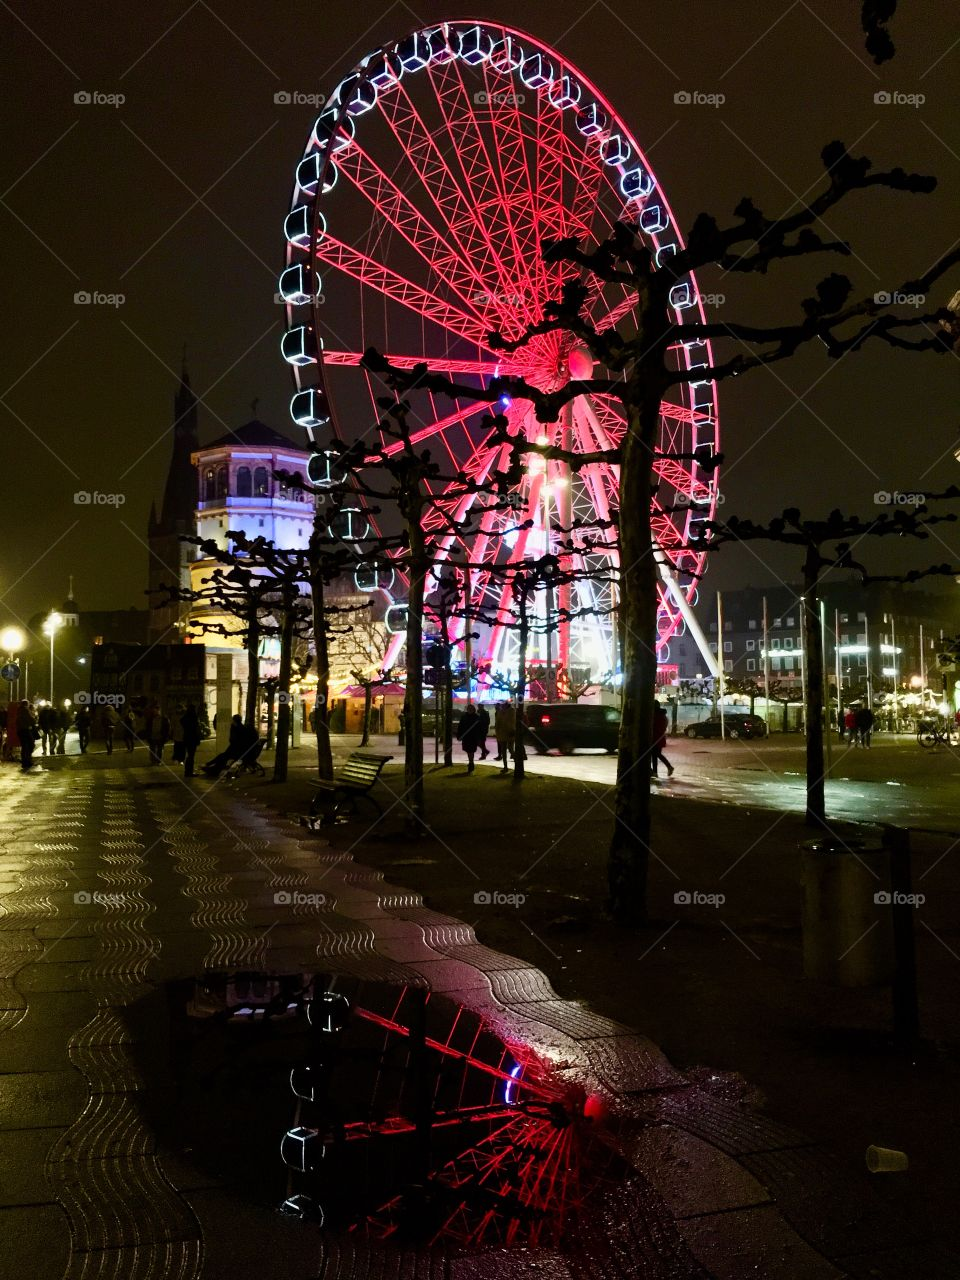 Beautiful Ferris wheels from far